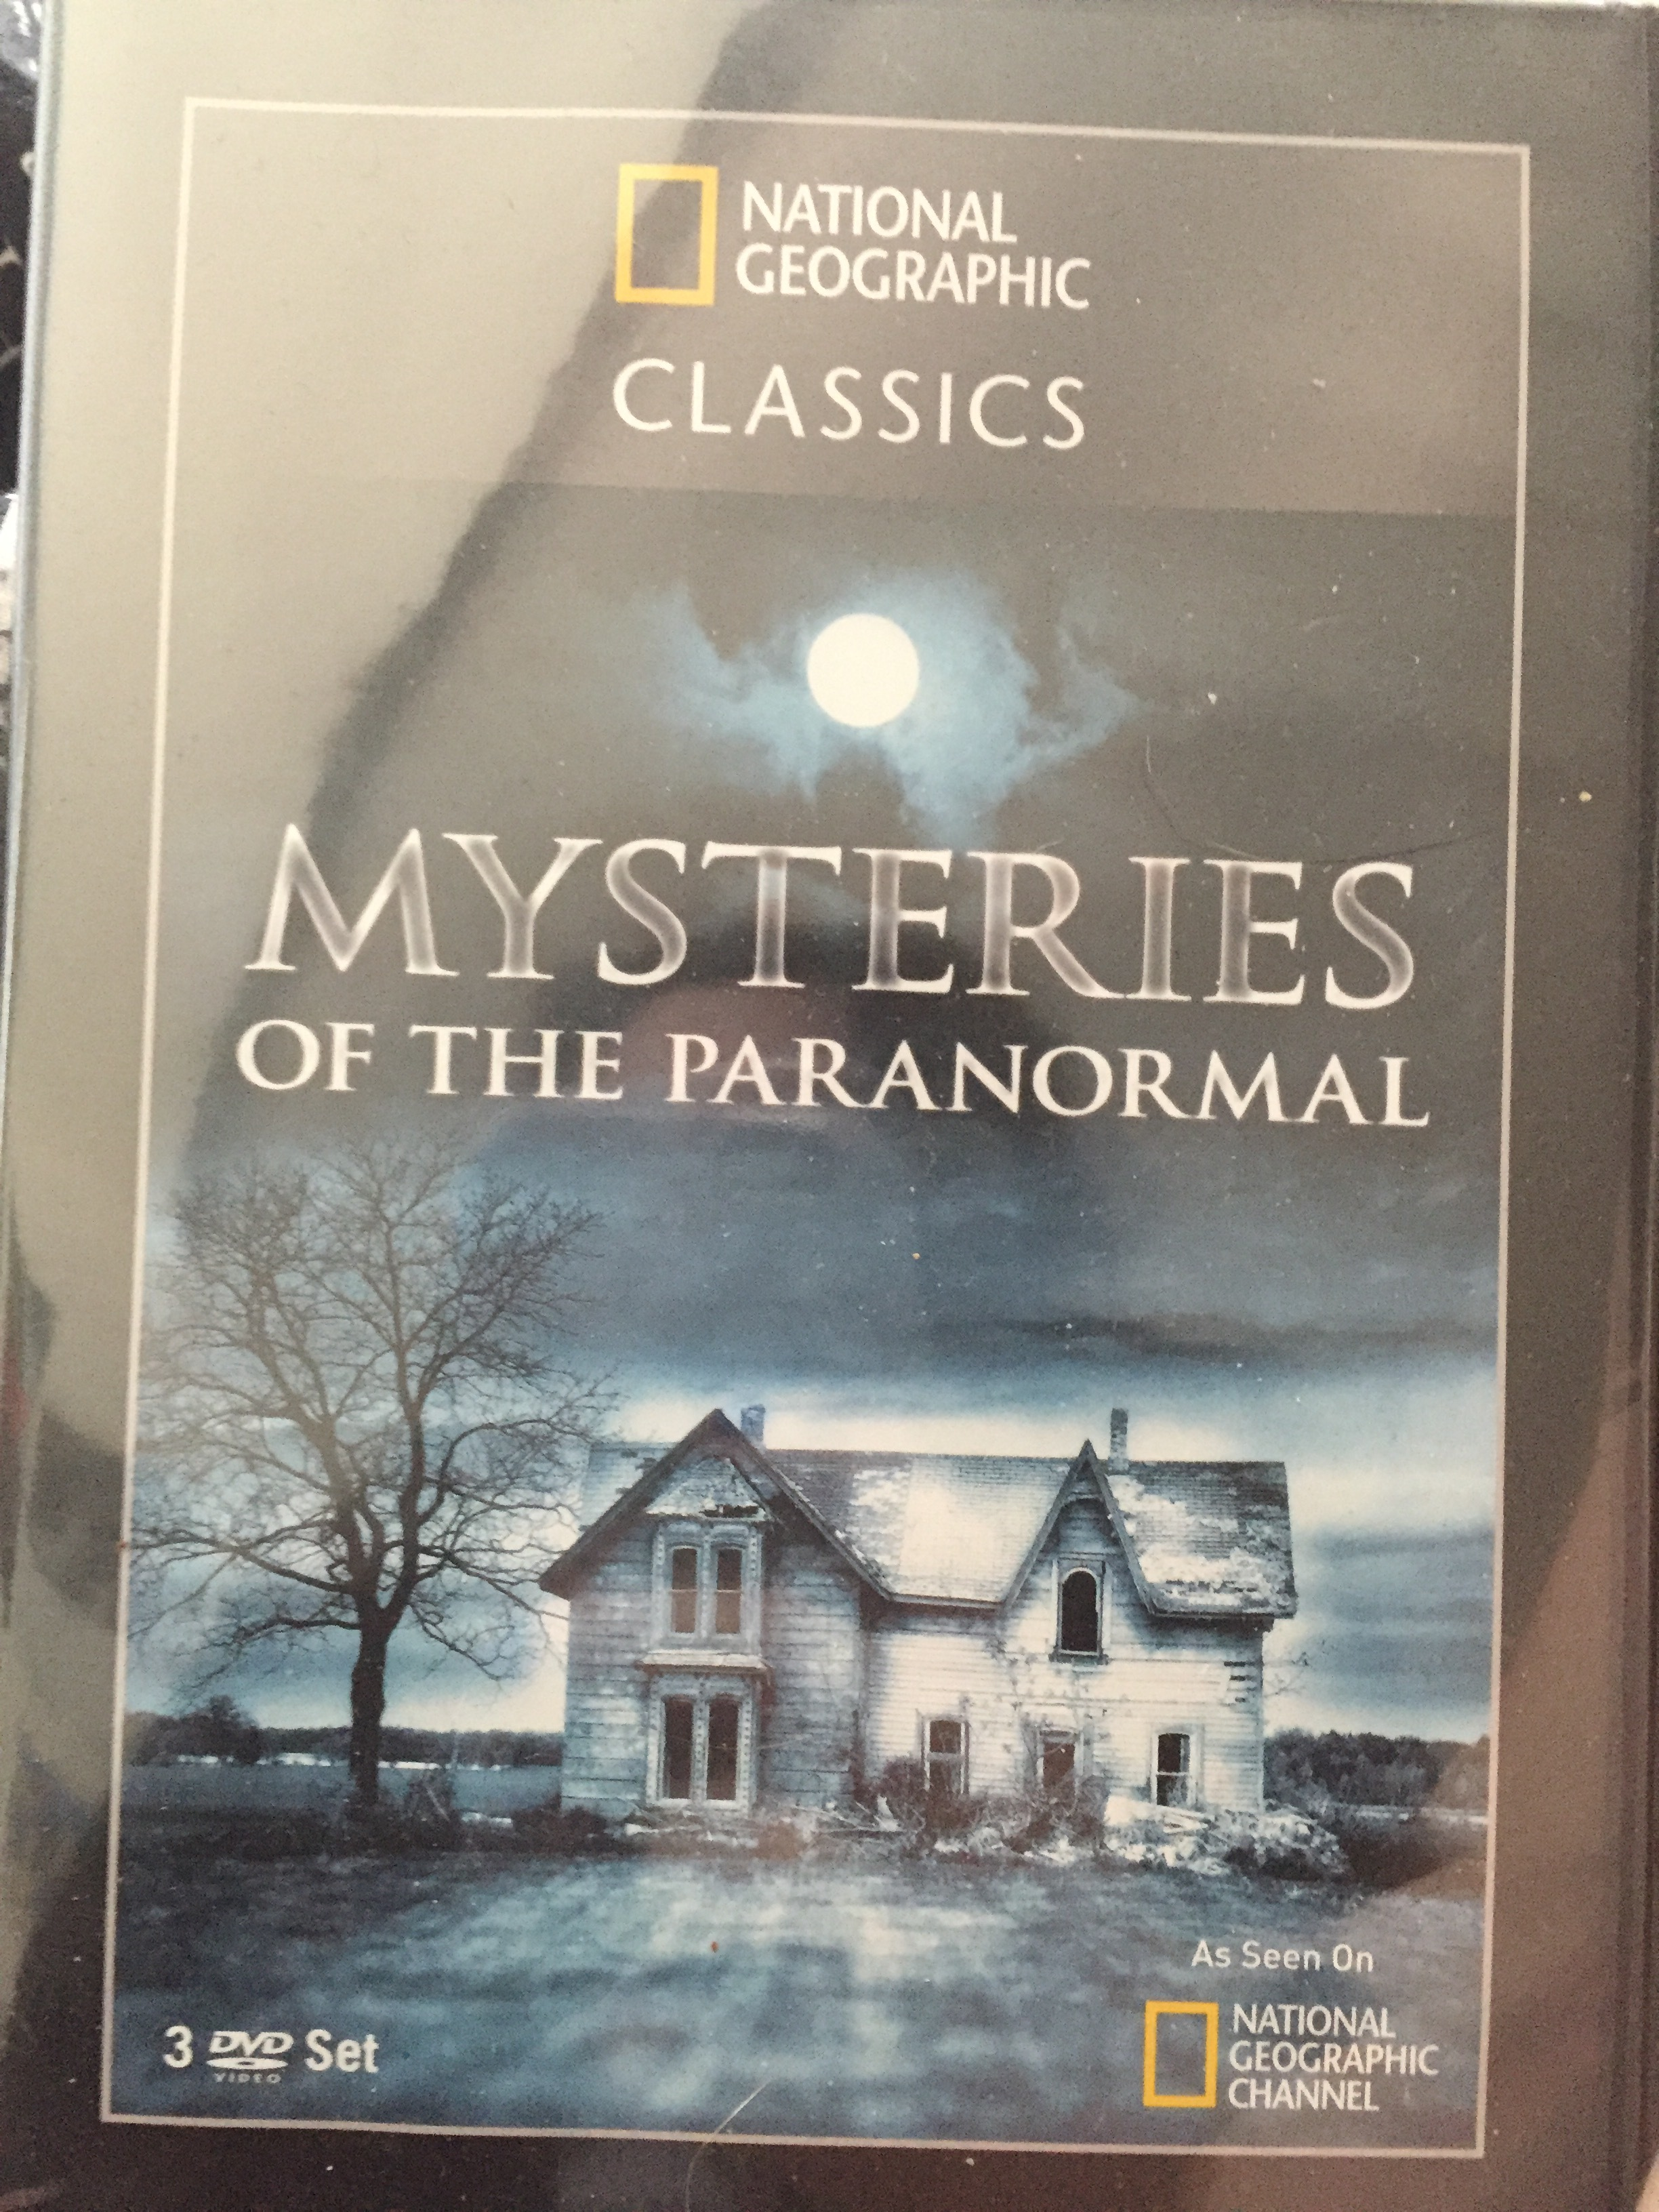 And I really actually love when they're spooky, considering I just got my hands on this (for free!)